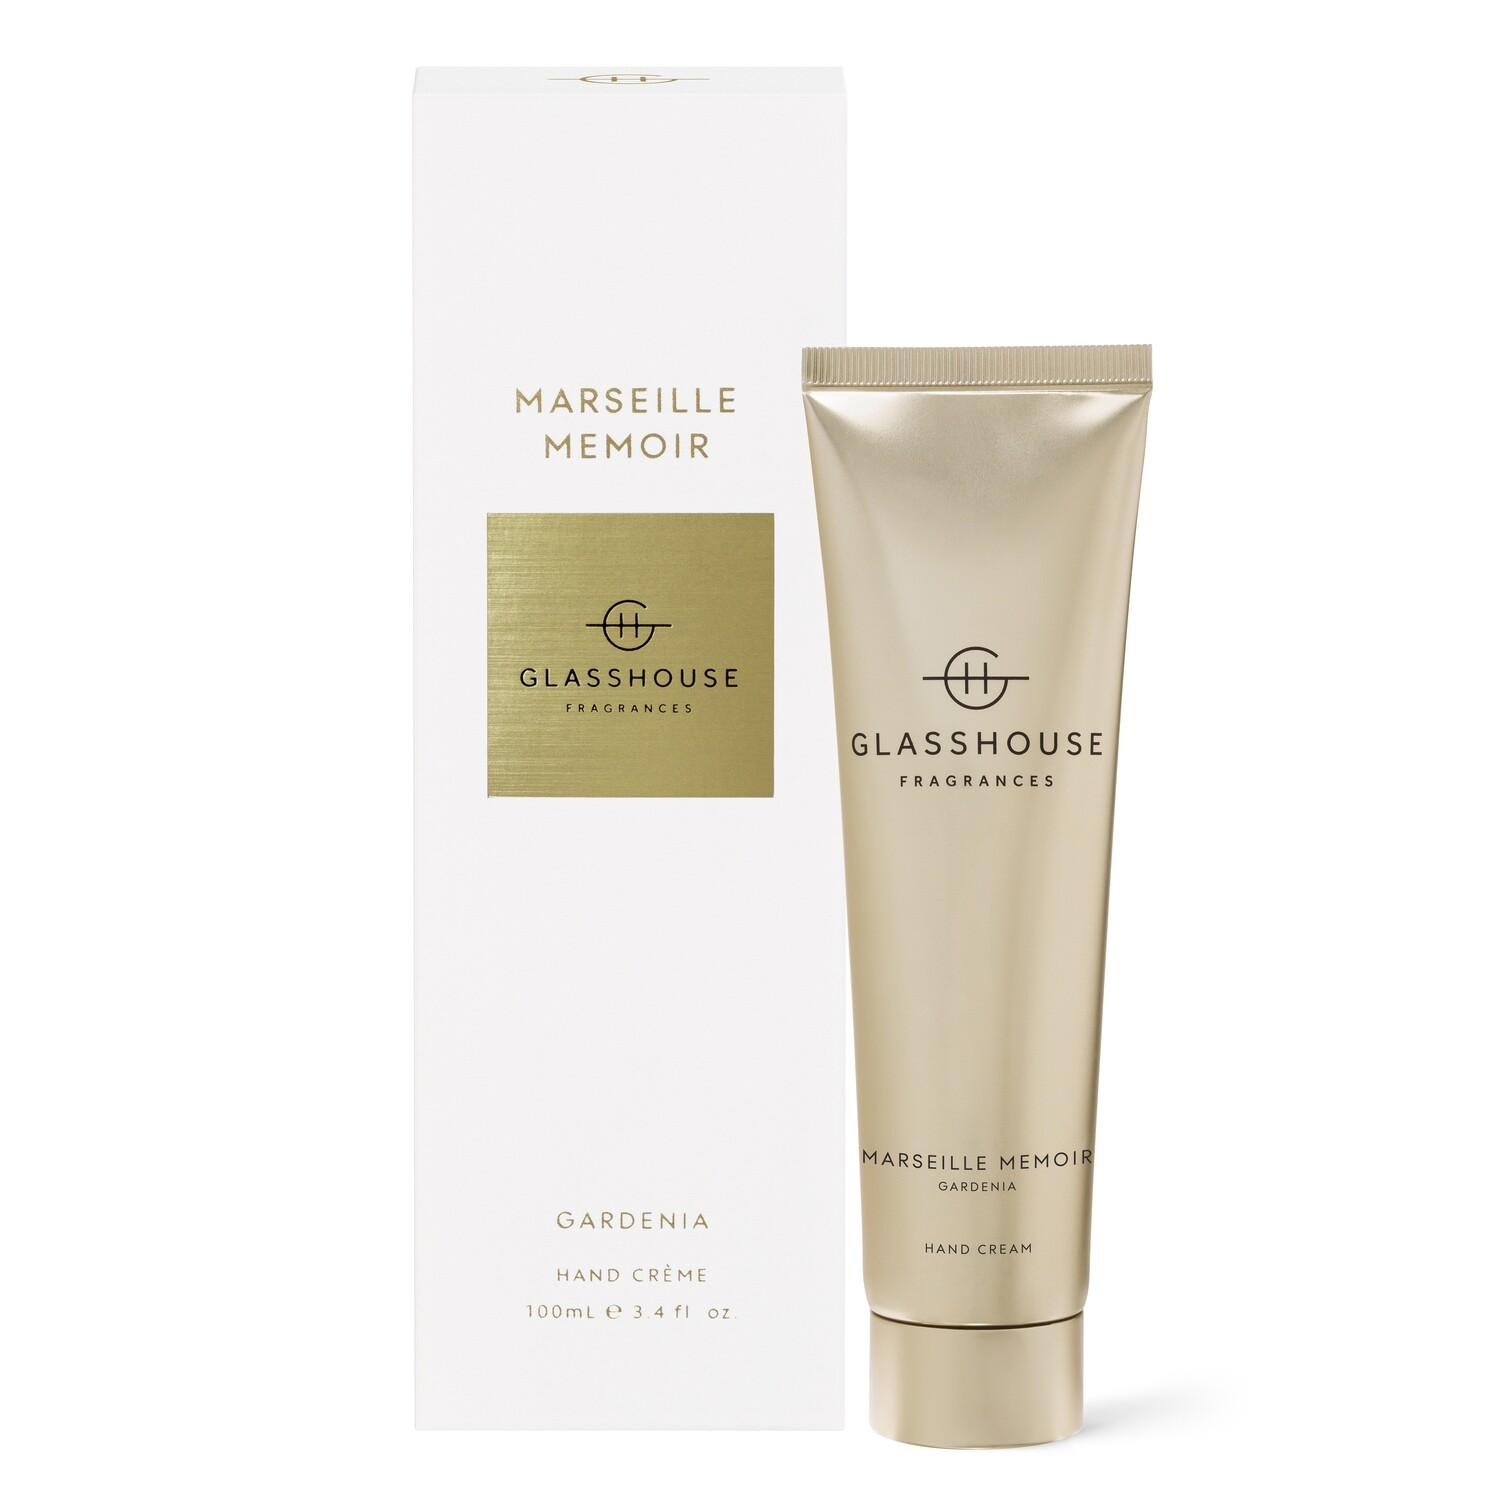 Glasshouse Handcream - Marseille Memoir 100ml